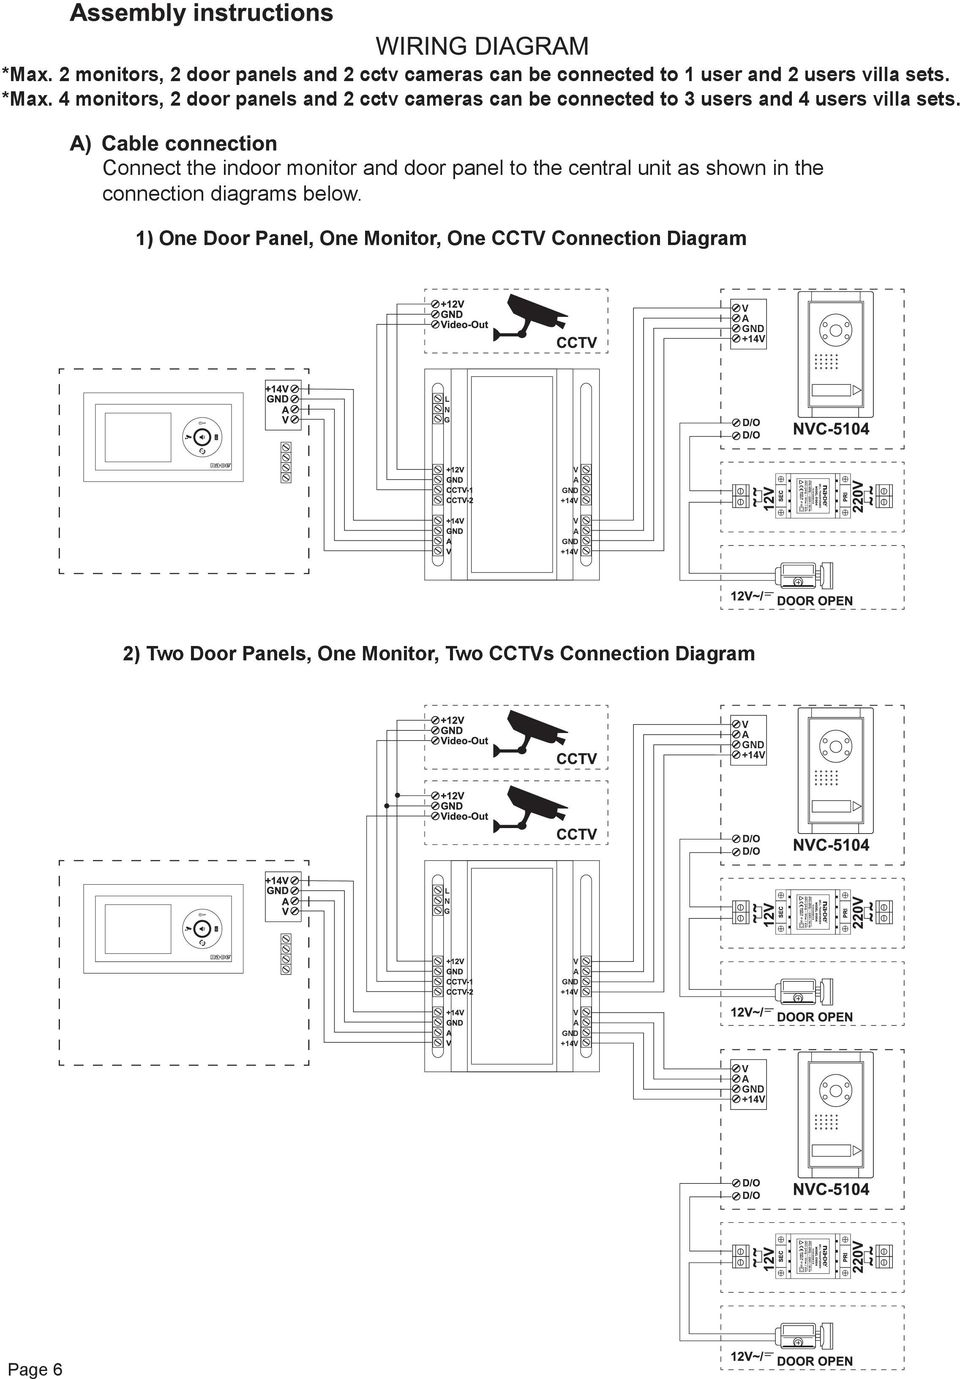 Connect the indoor monitor and door panel to the central unit as shown in the connection diagrams below.